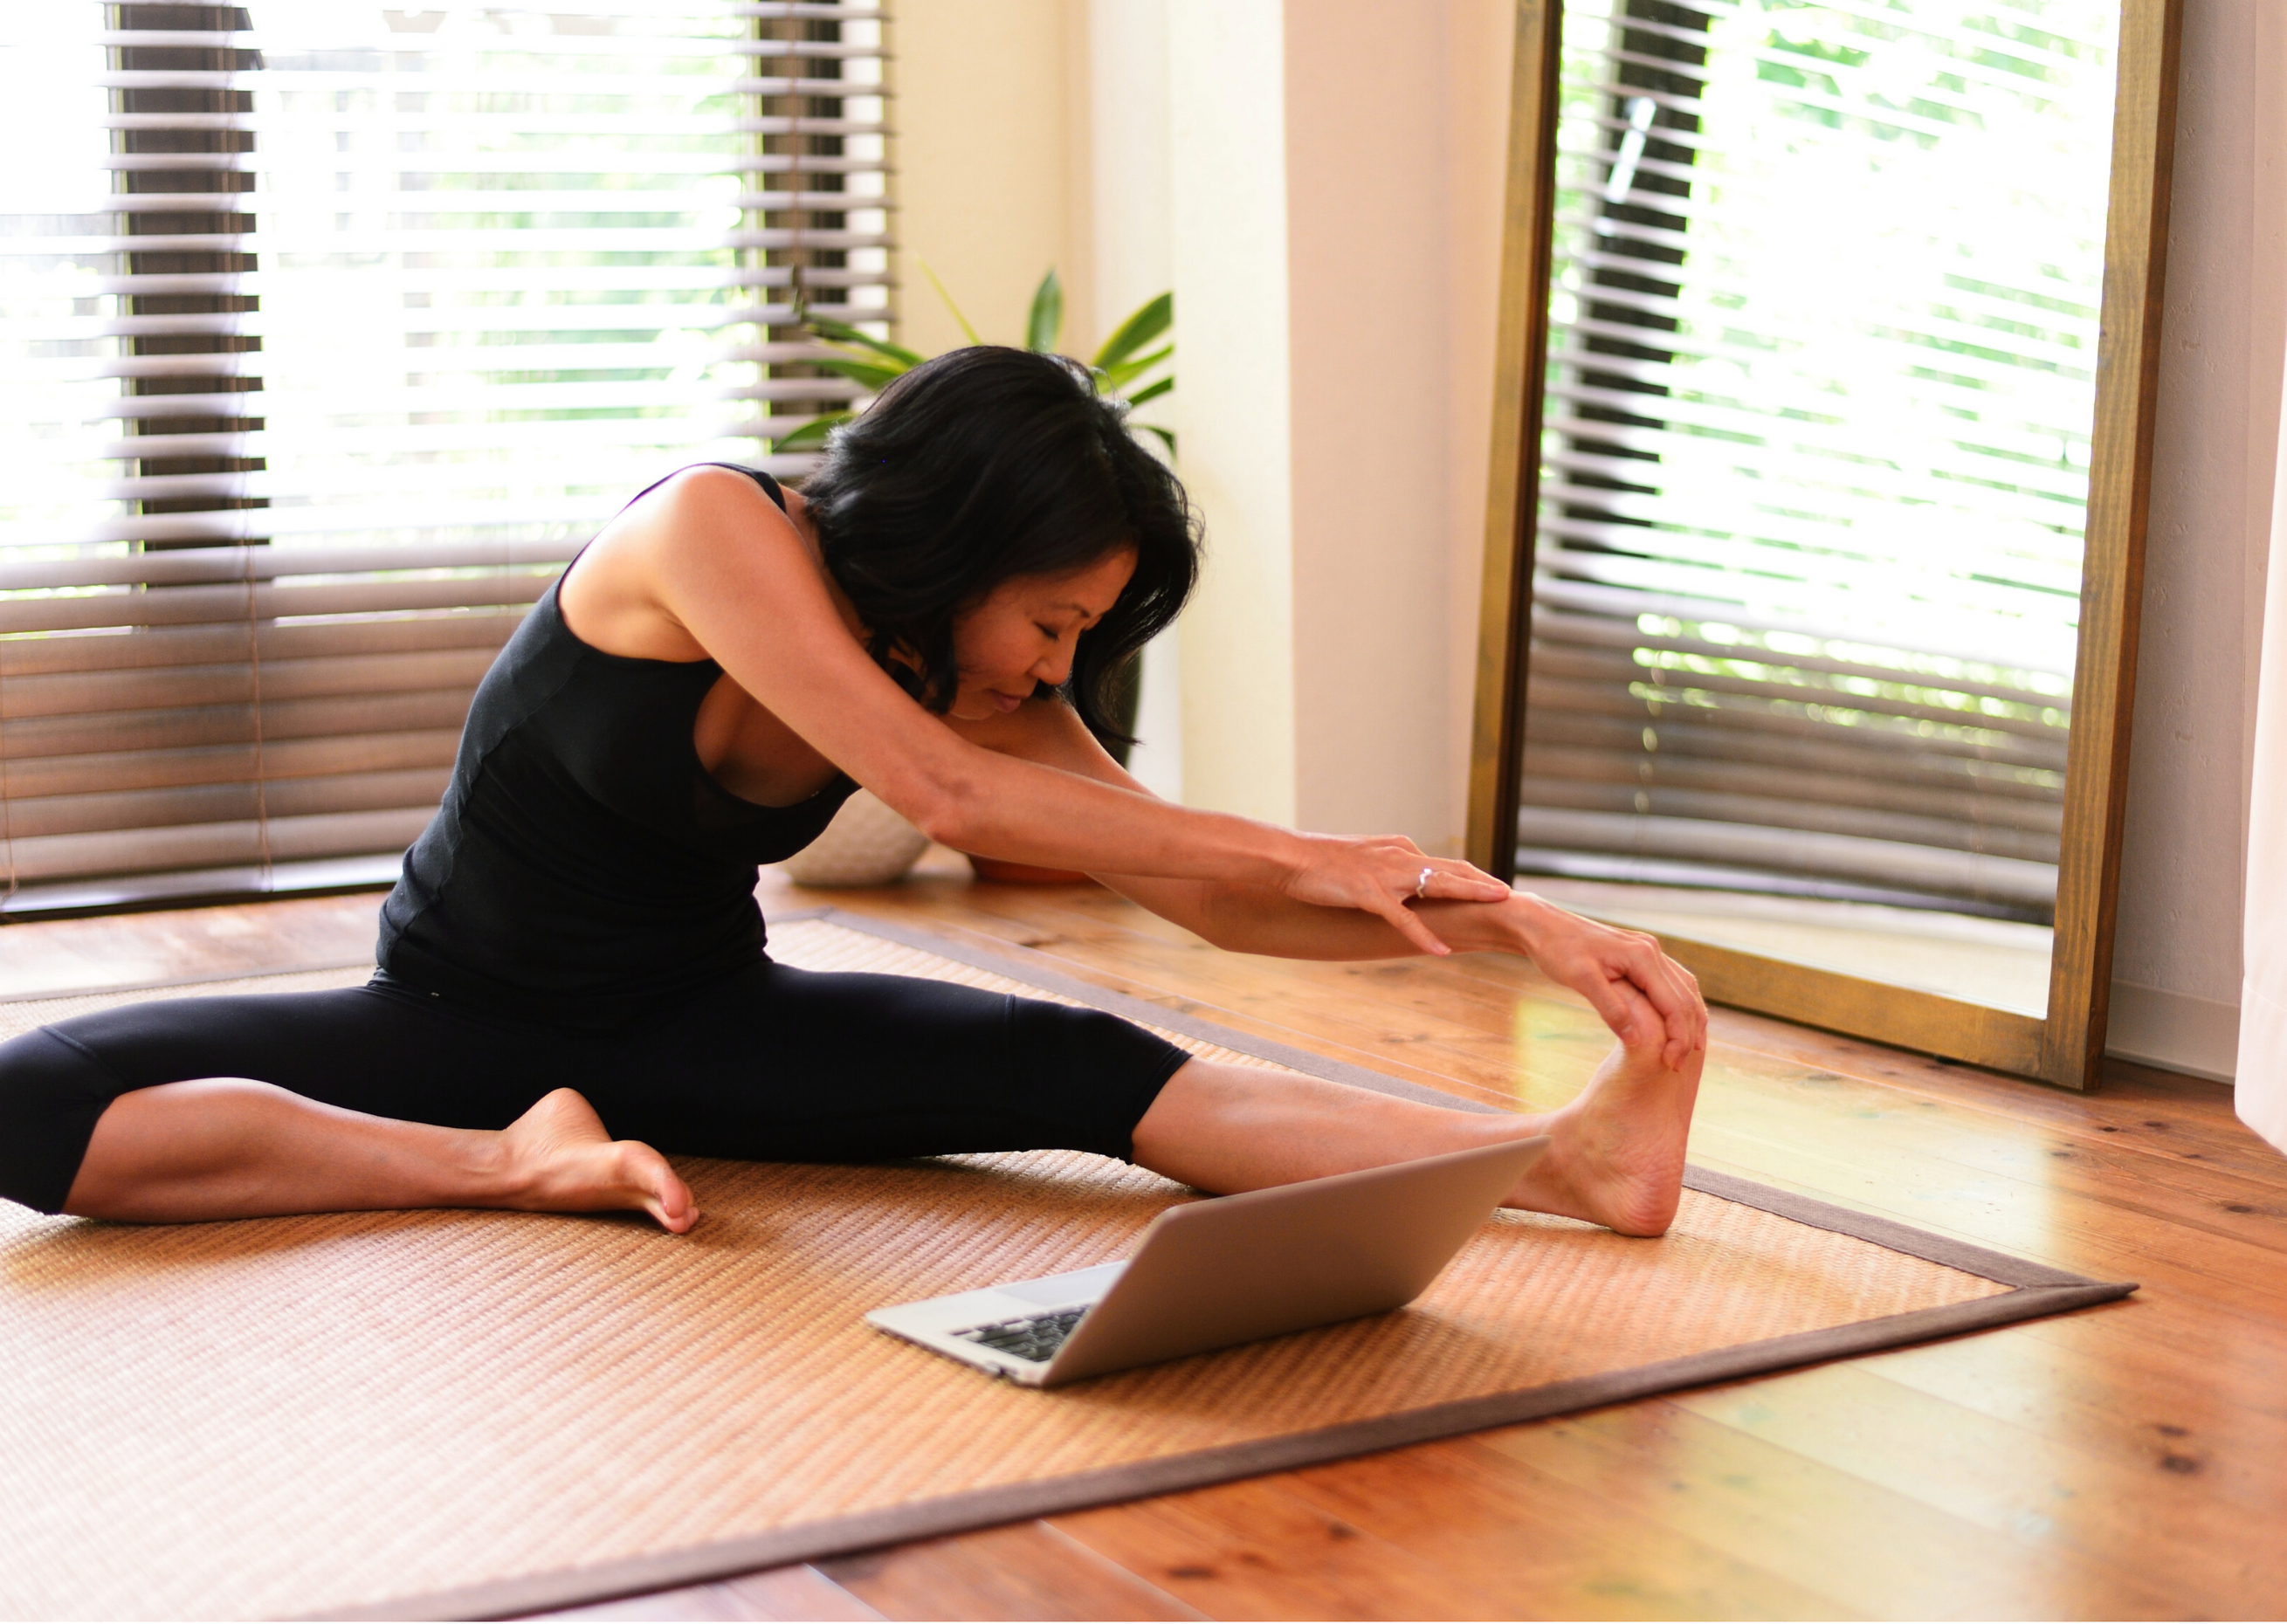 woman wearing gym clothes doing stretch exercise on the floor in front of a computer